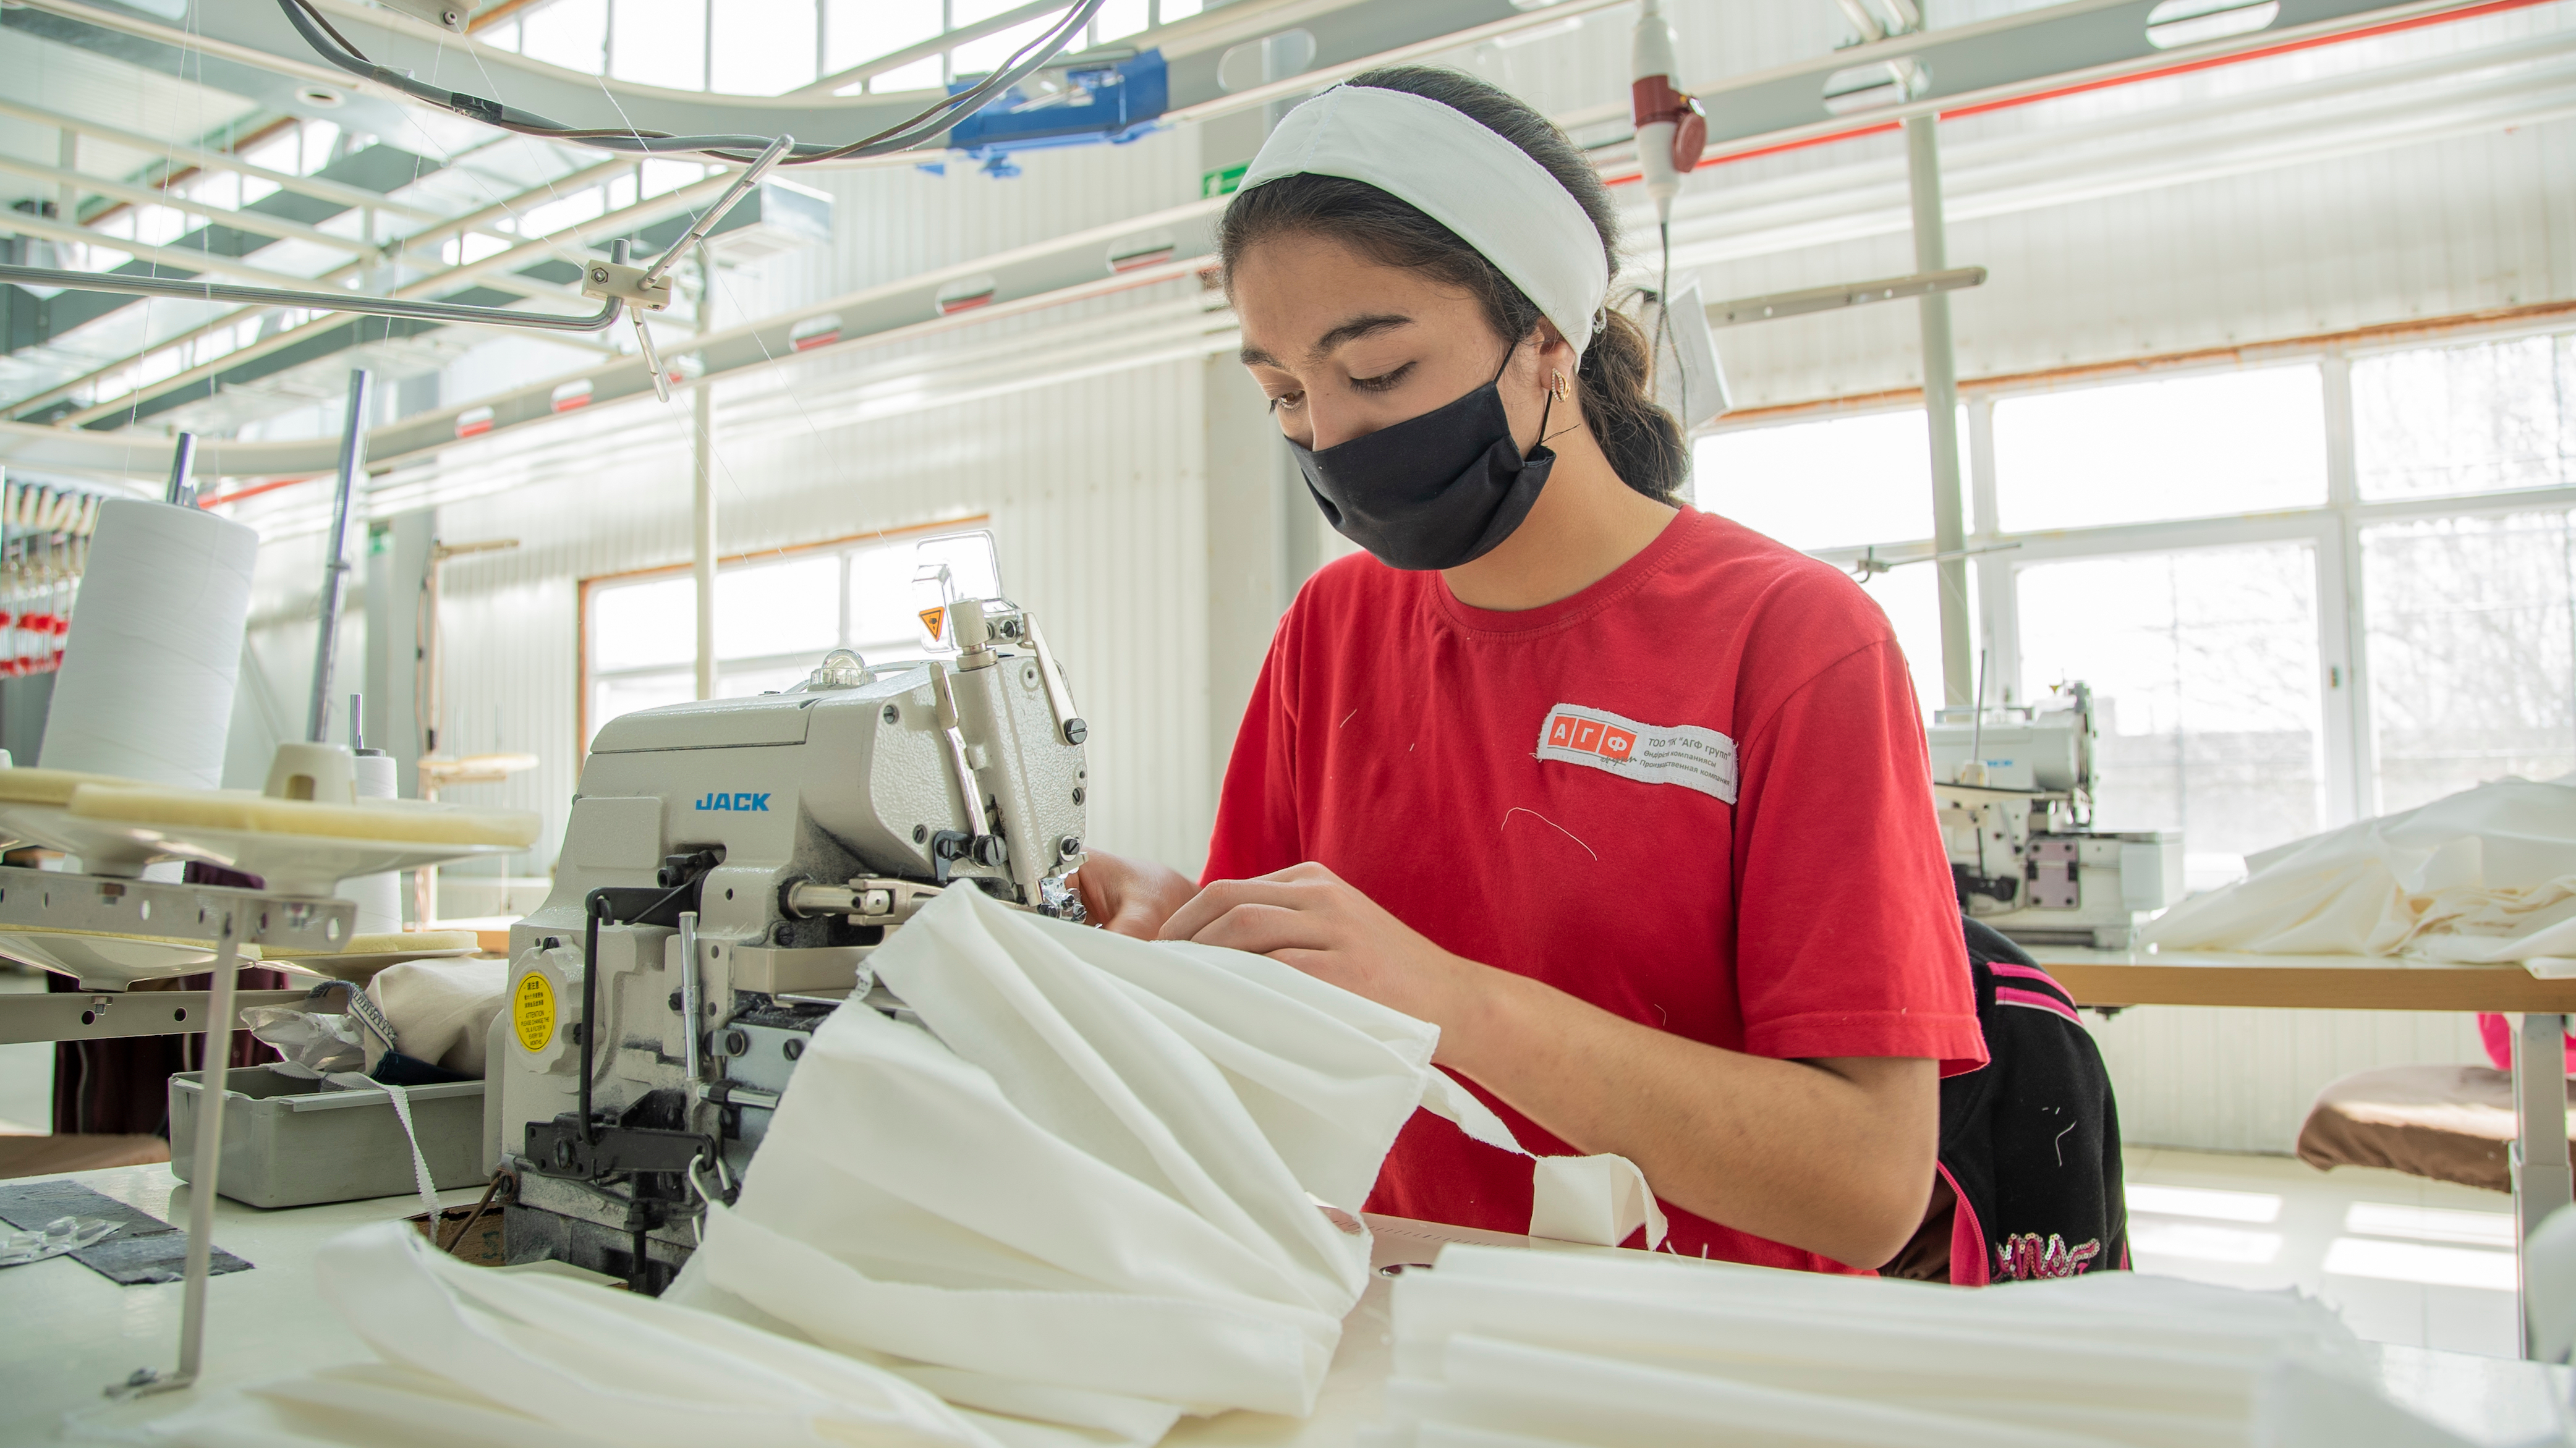 The apparel industry must balance the health and safety of factory workers against the desire to ramp up production, Inspectorio says.